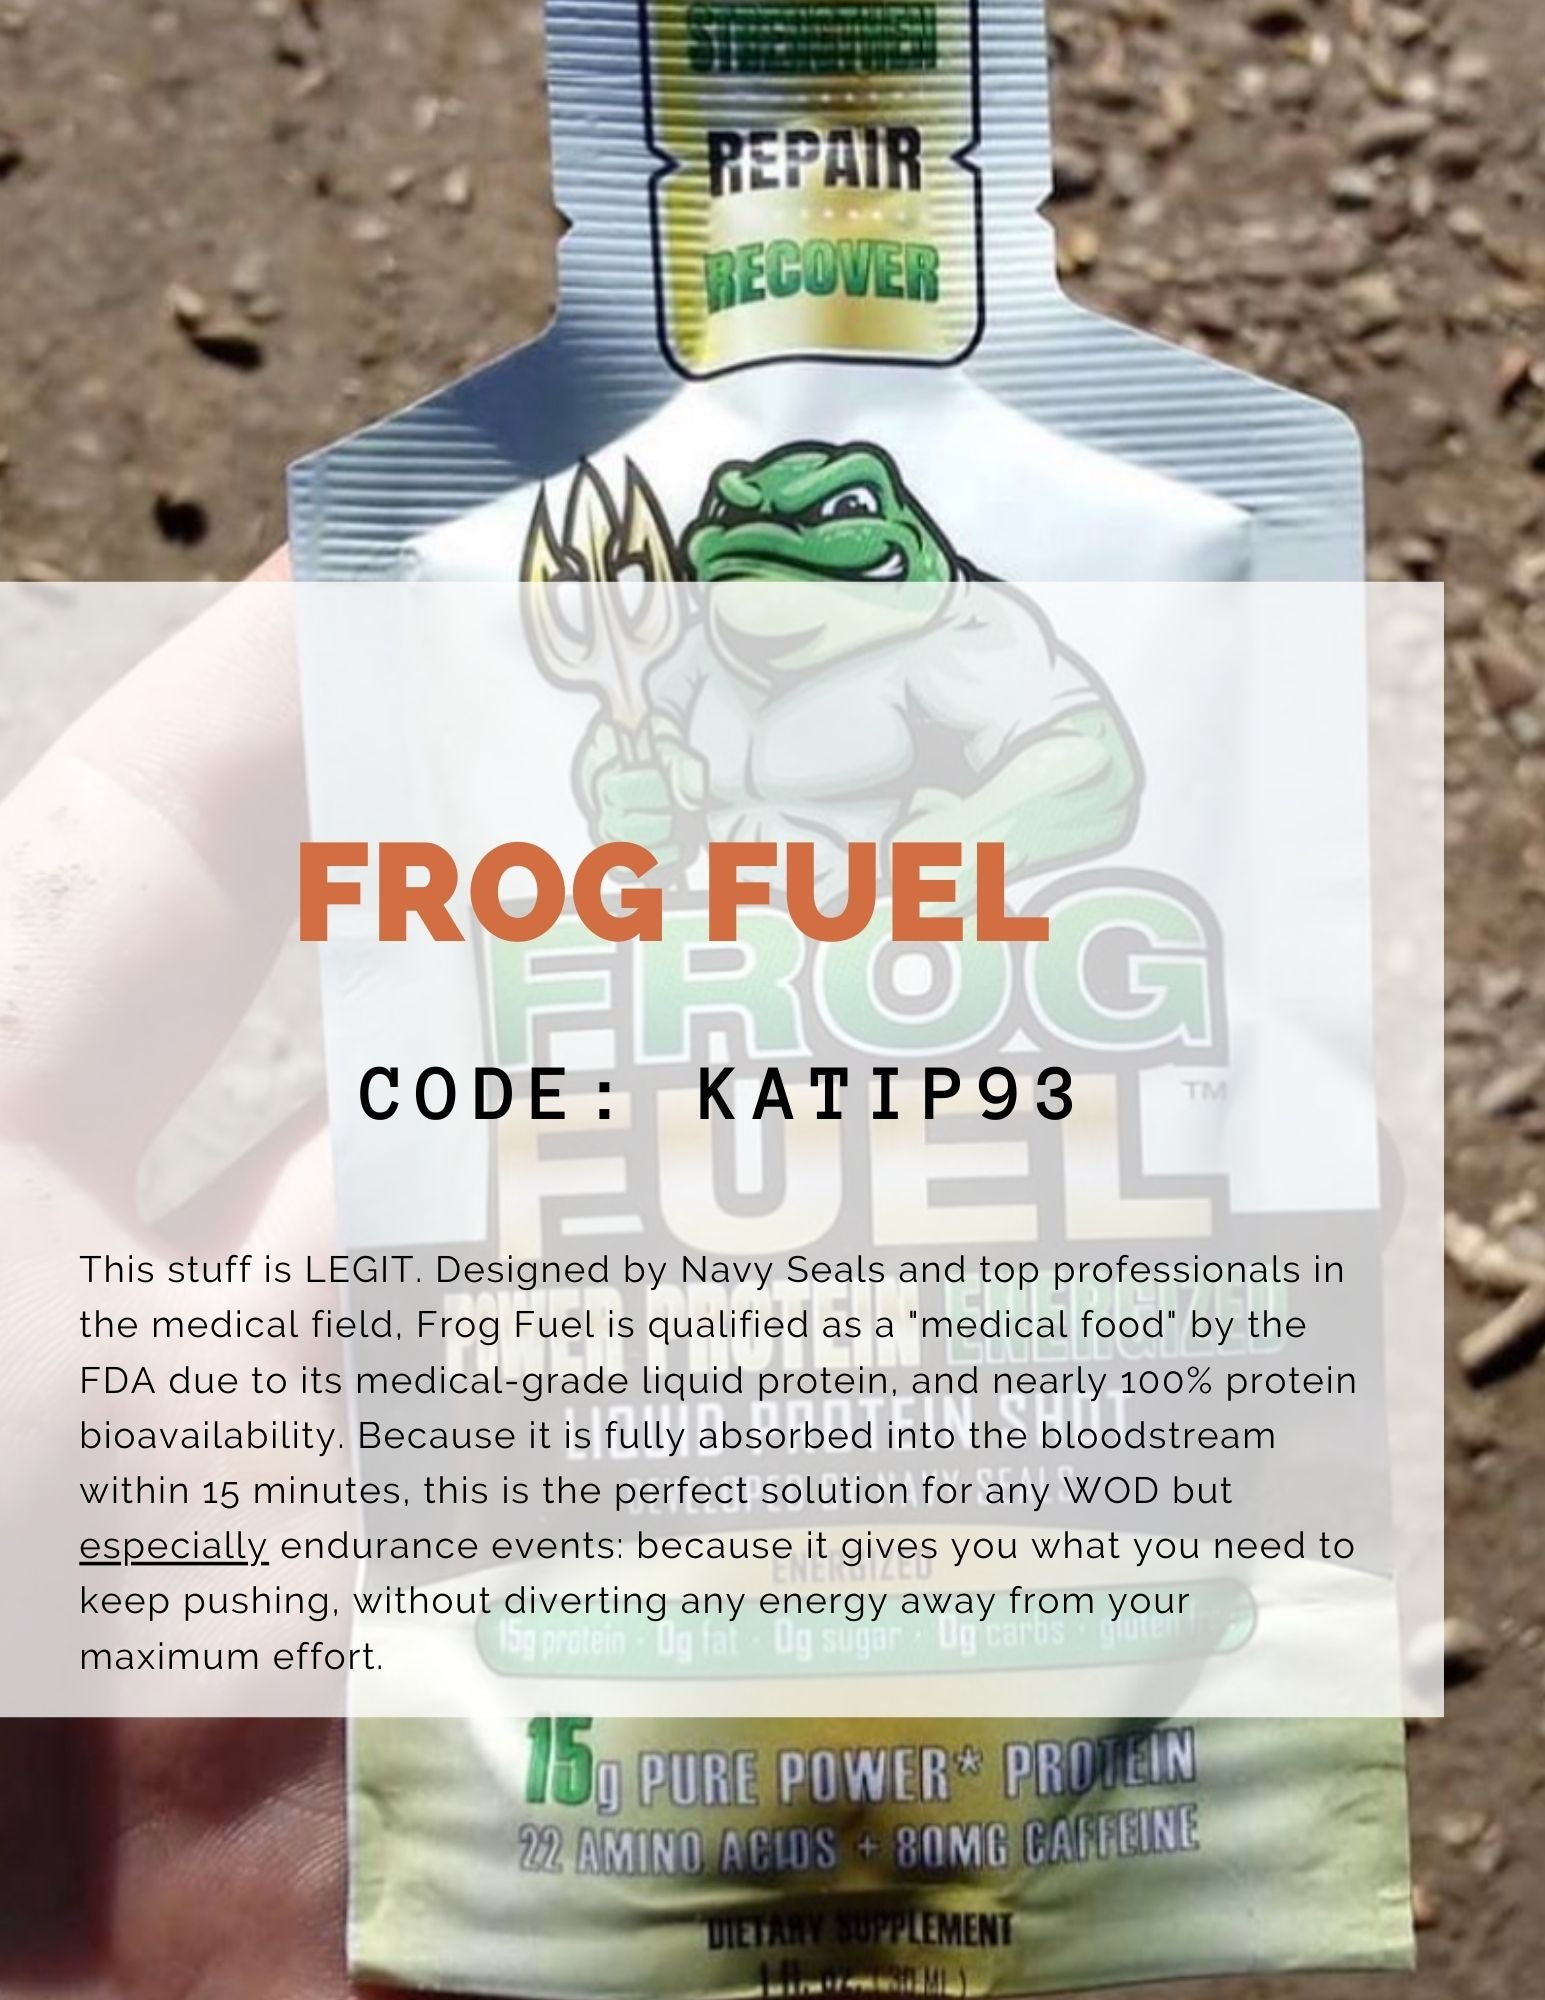 Frog Fuel liquid protein affiliate link discount information